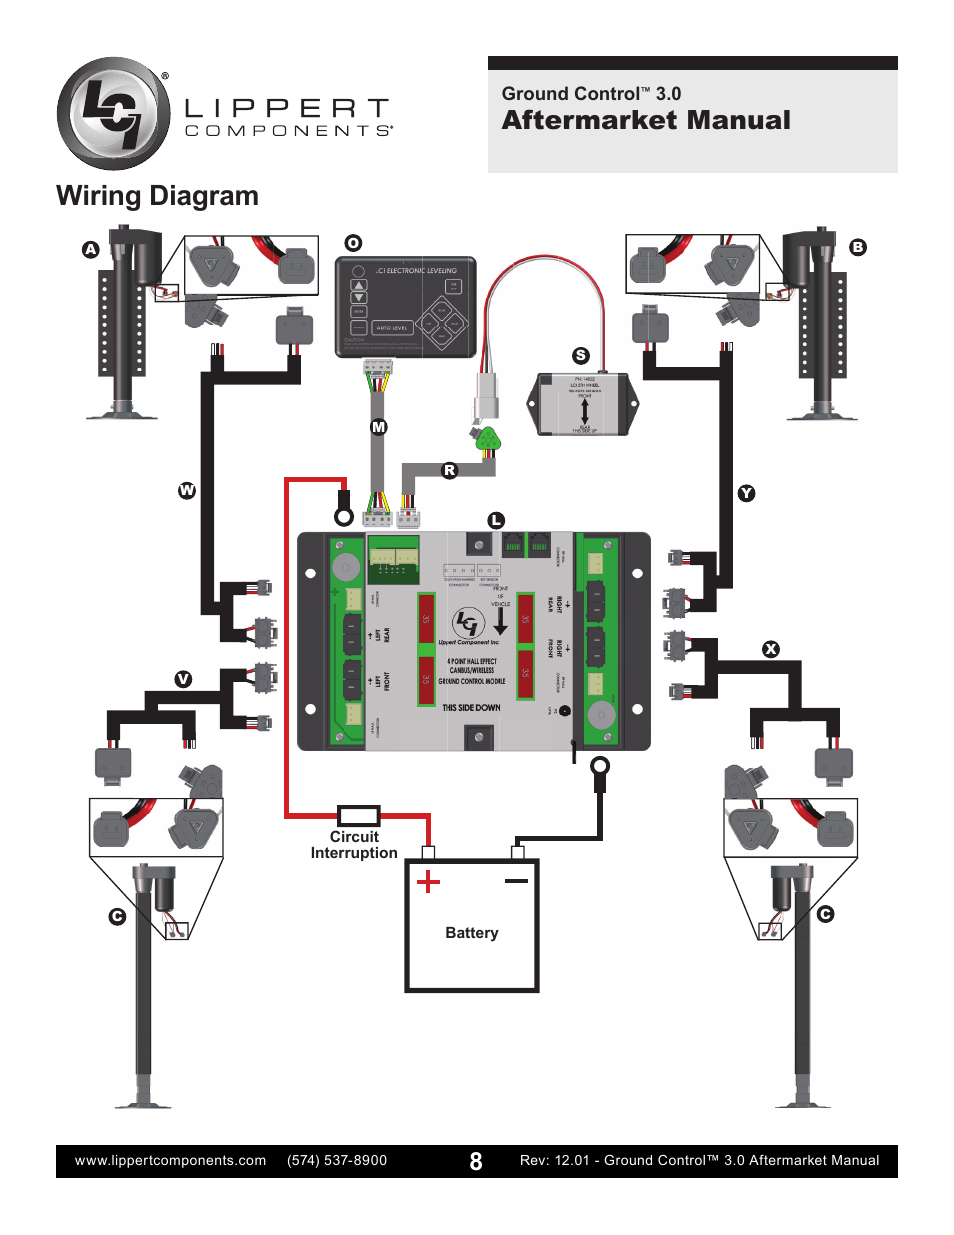 Wiring Diagram  Aftermarket Manual